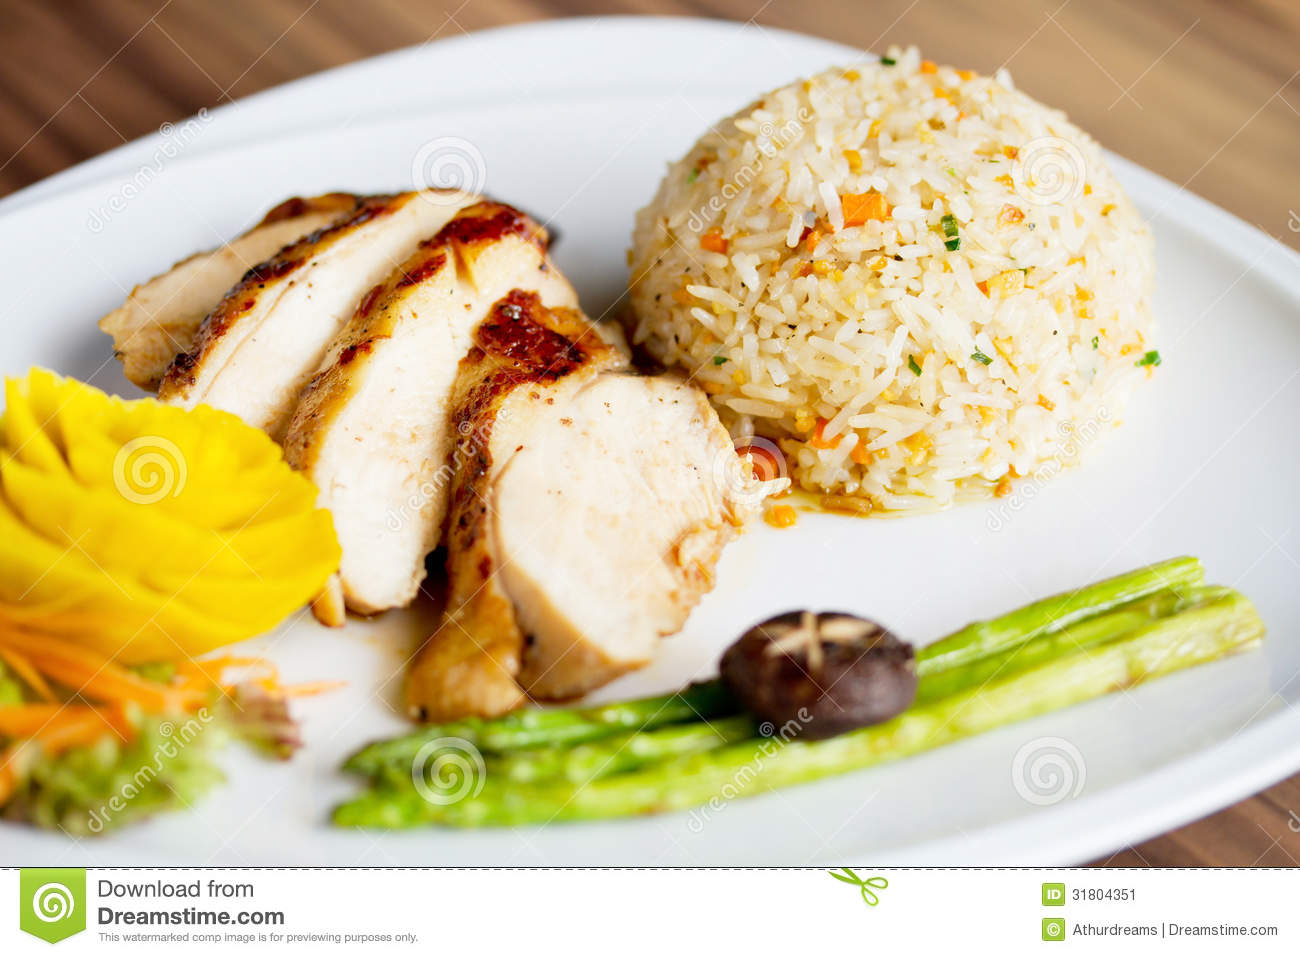 Chicken Fillet With Fried Rice Stock Image - Image: 31804351